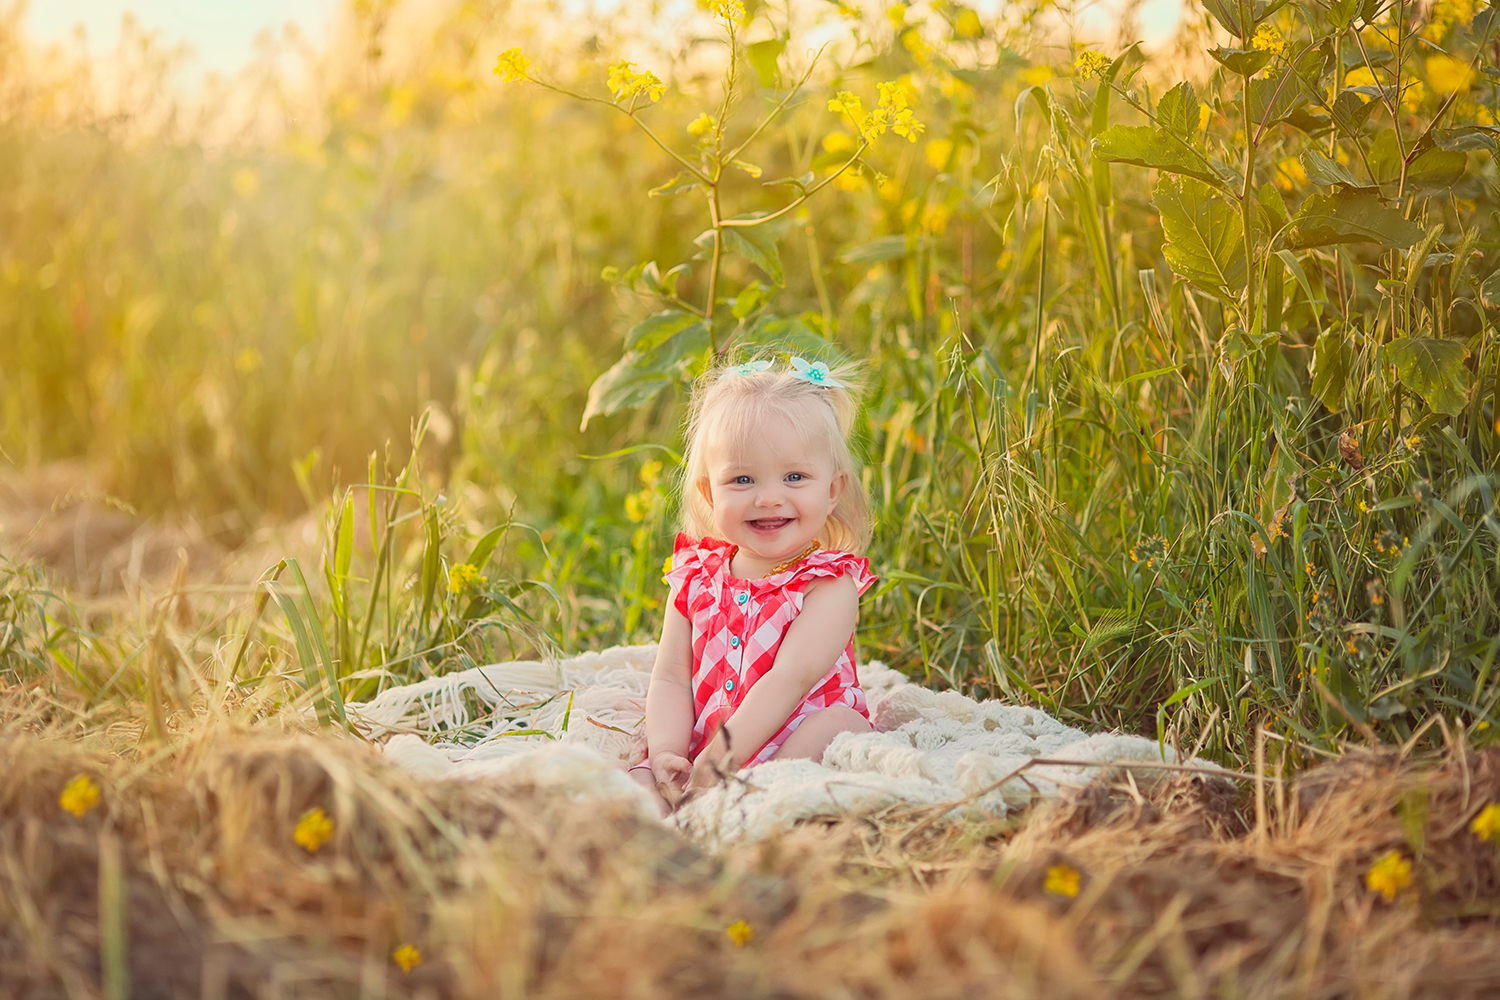 Dena_Rooney_baby photographer_0025.jpg